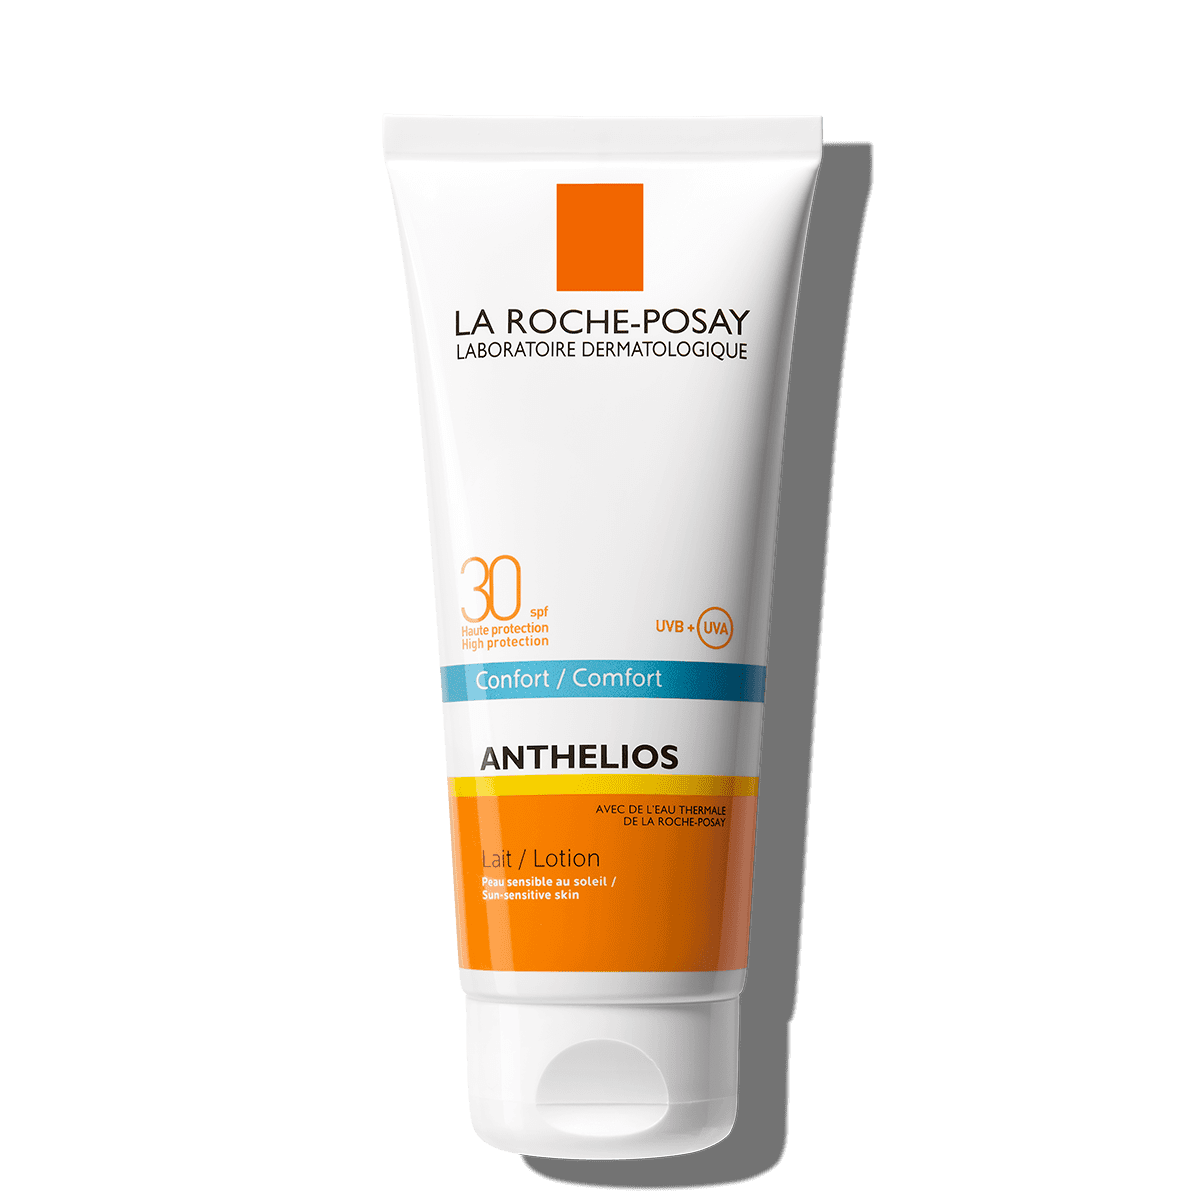 La Roche Posay ProductPage Sun Anthelios Smooth Lotion Spf30 100ml 333